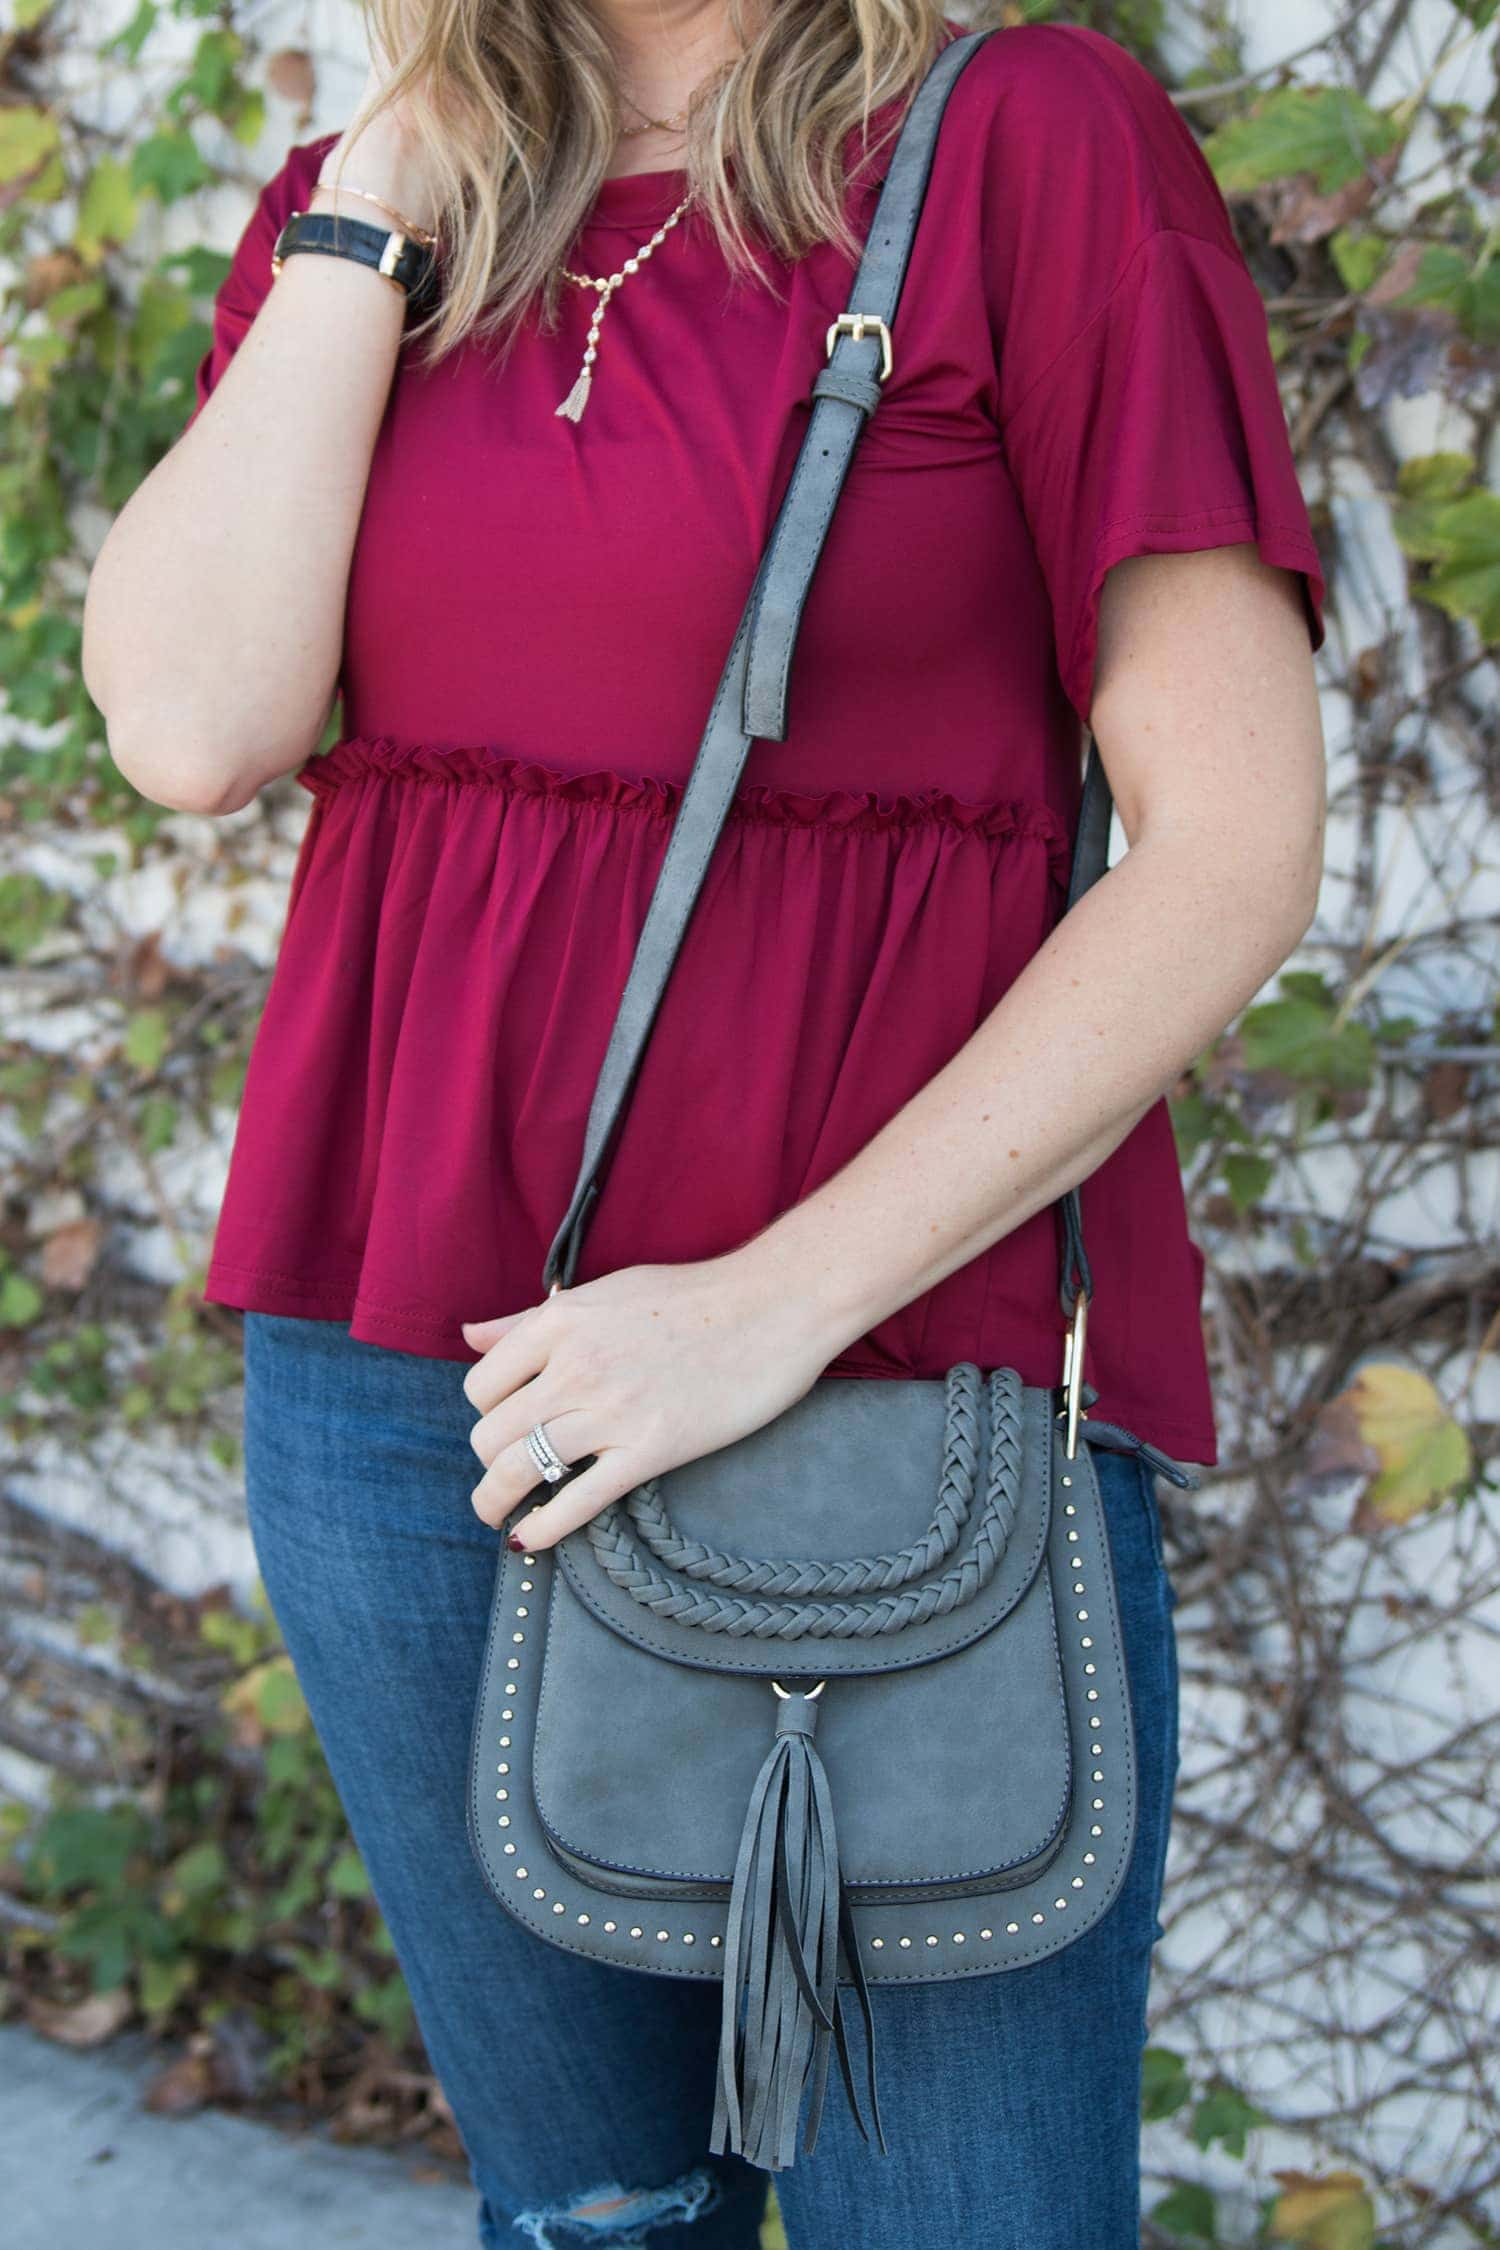 love this burgundy top for fall, and this saddle bag is a total dupe for the Chloe saddle bag!